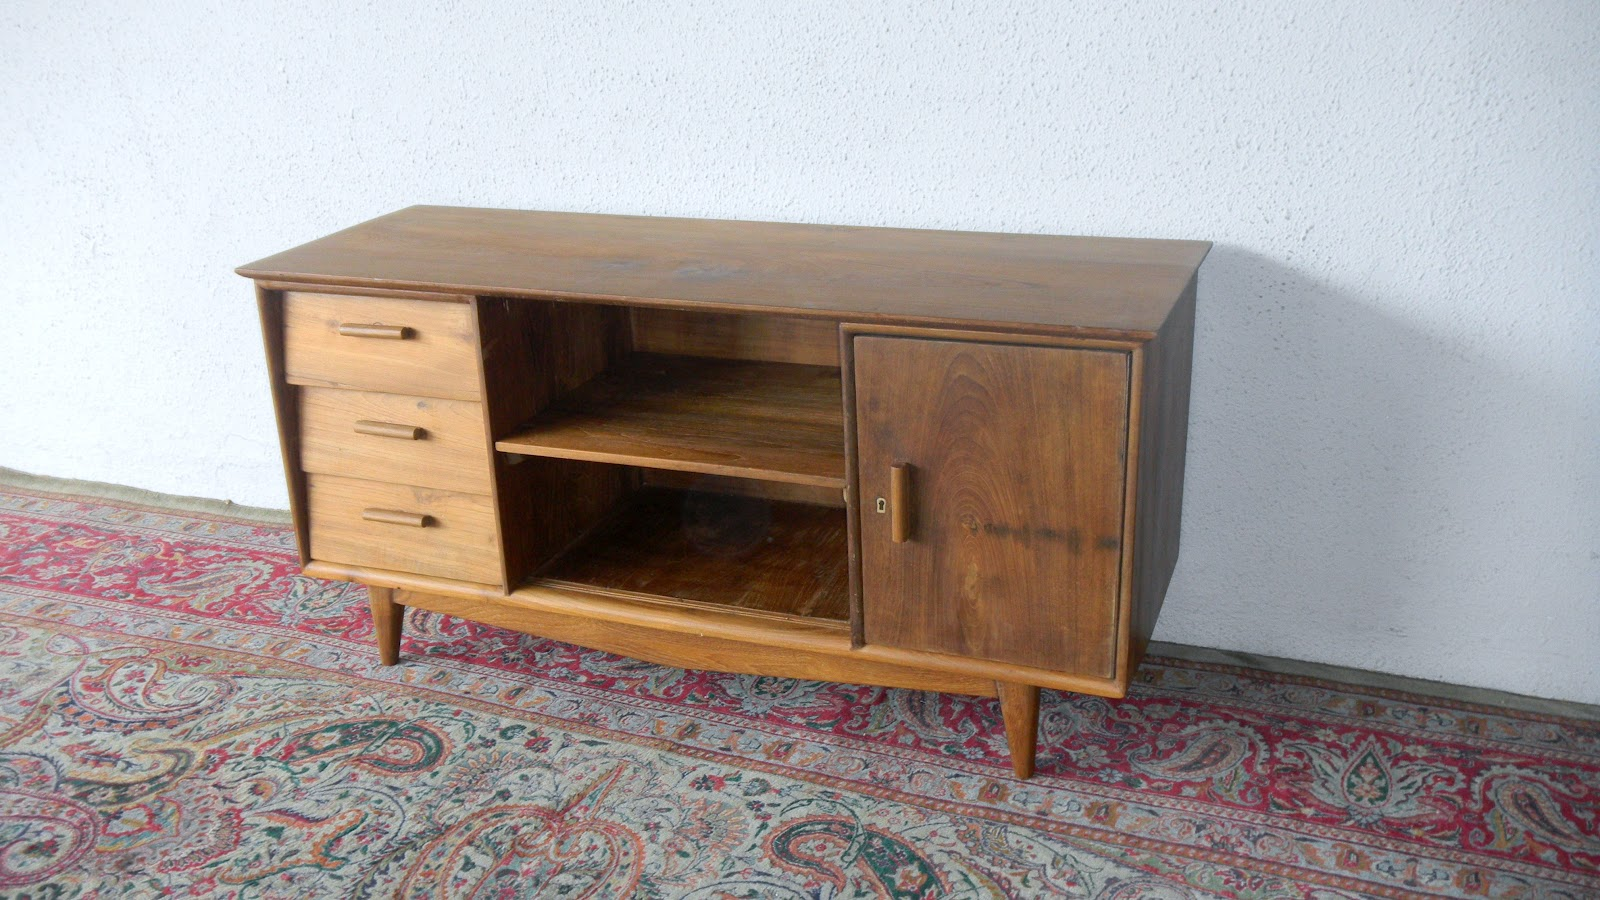 Vintage Furniture Beautiful Sideboards Wardrobes And Wooden Filing Cabinets Bobs Furniture